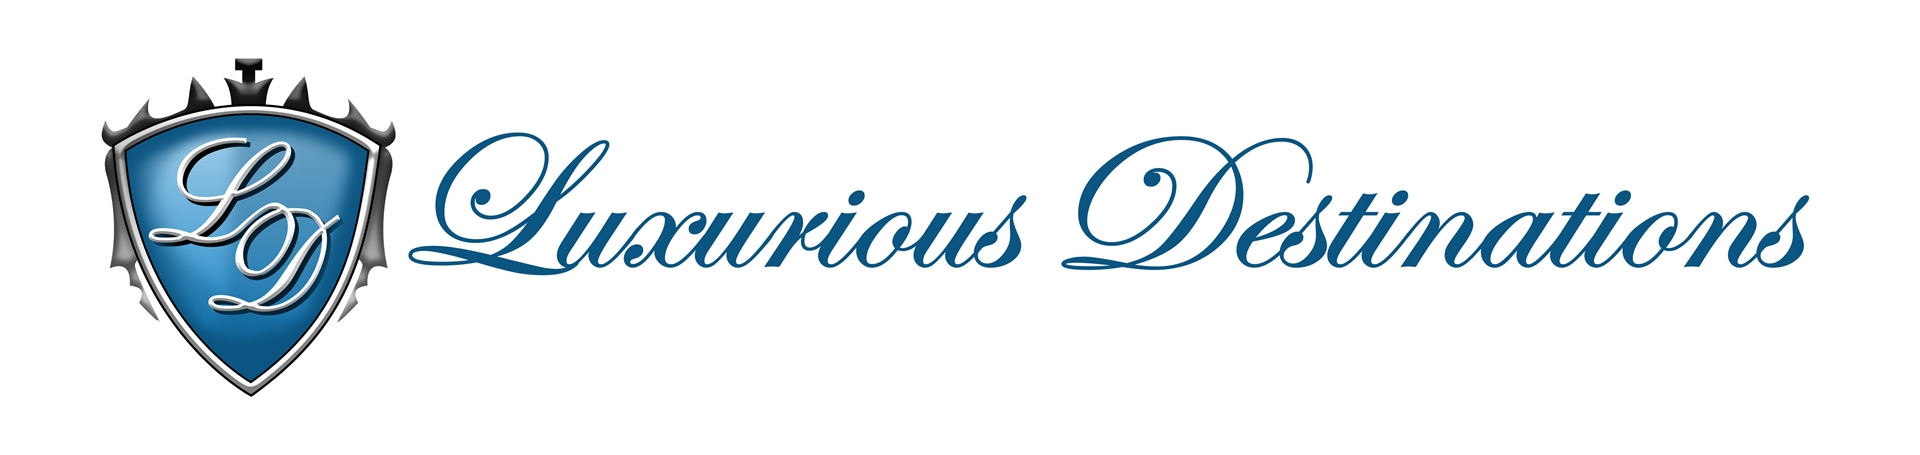 luxurious destinations logo